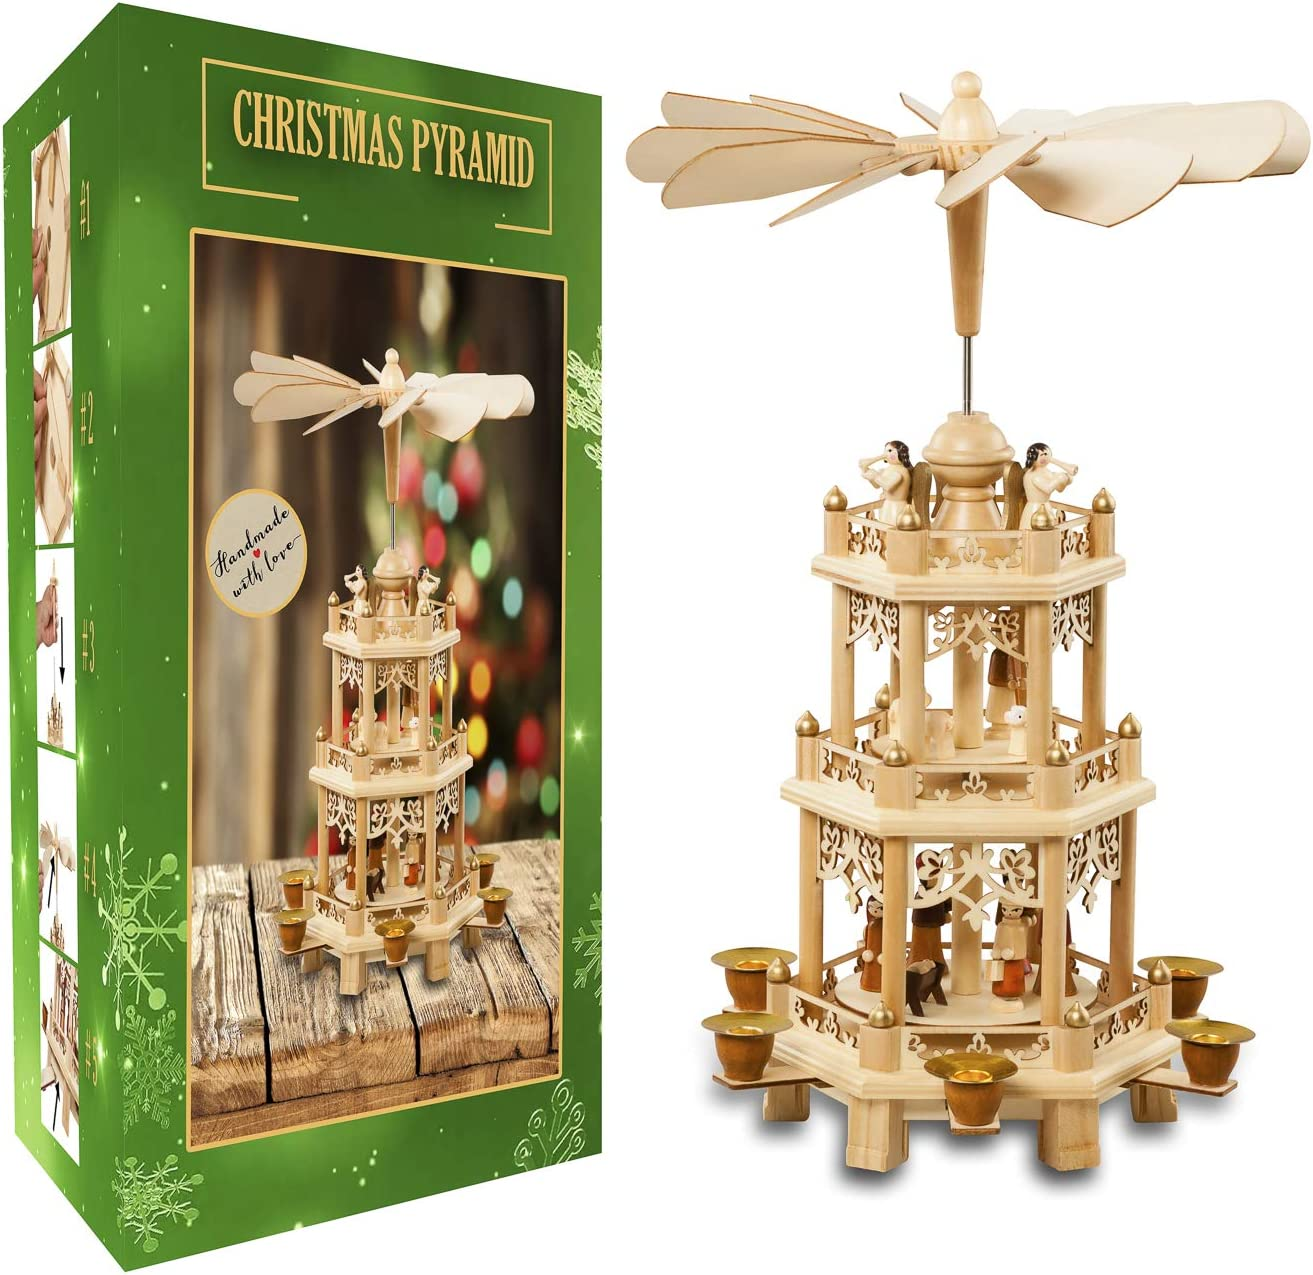 German Christmas Decoration Pyramid 18 Inches - Wood Nativity Scene Set - Under the Christmas Tree and Table Top Holiday Décor-Nativity Play 3 Tiers Carousel with 6 Candle Holders - German Design.